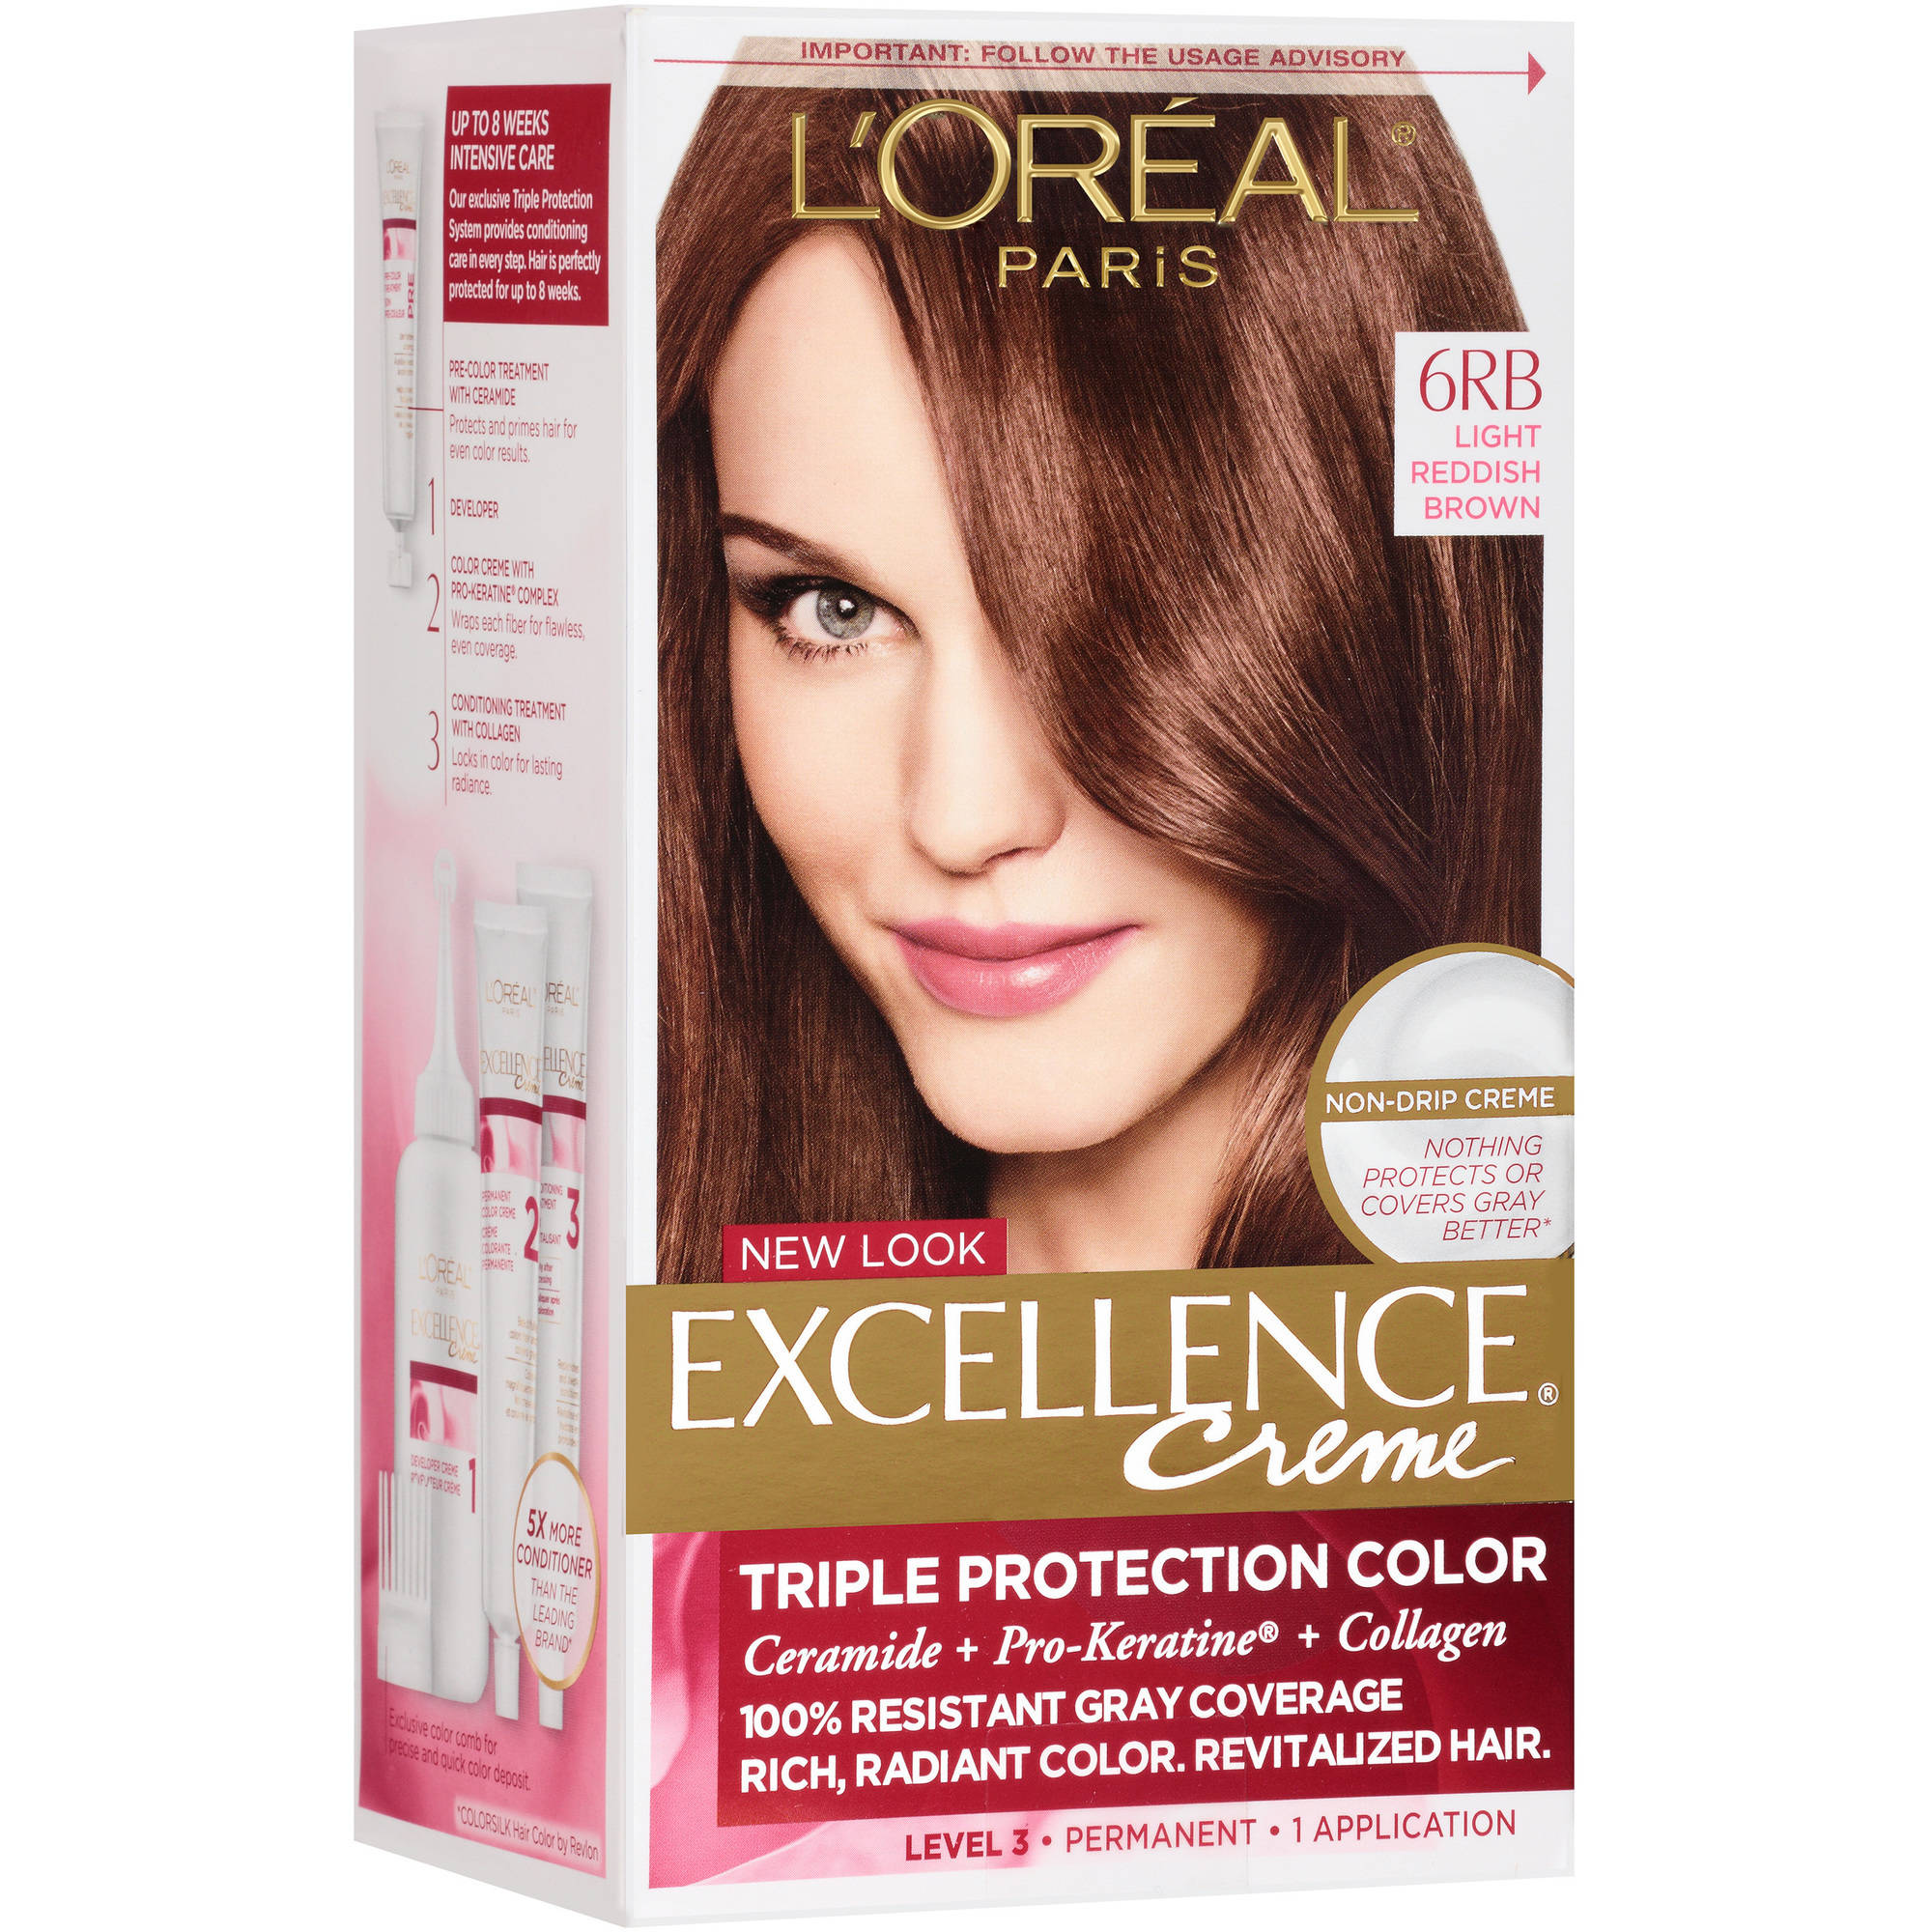 Loreal Paris Excellence Creme Permanent Hair Color Walmart